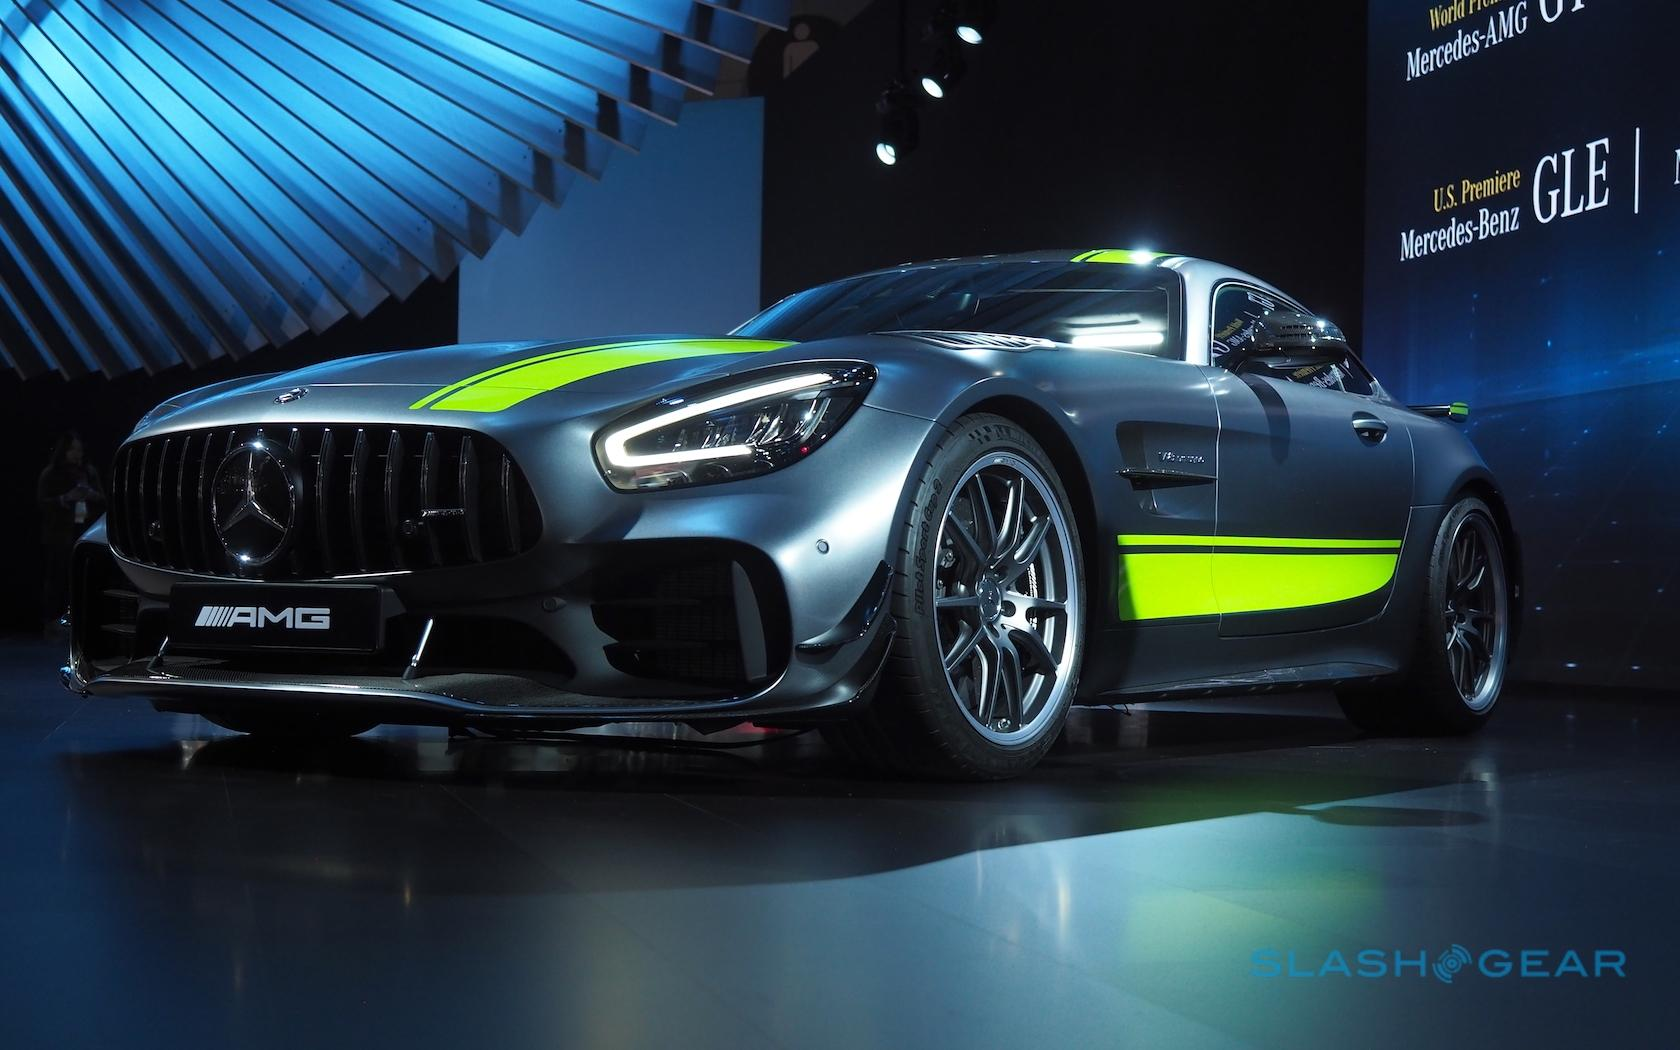 The 2020 Mercedes